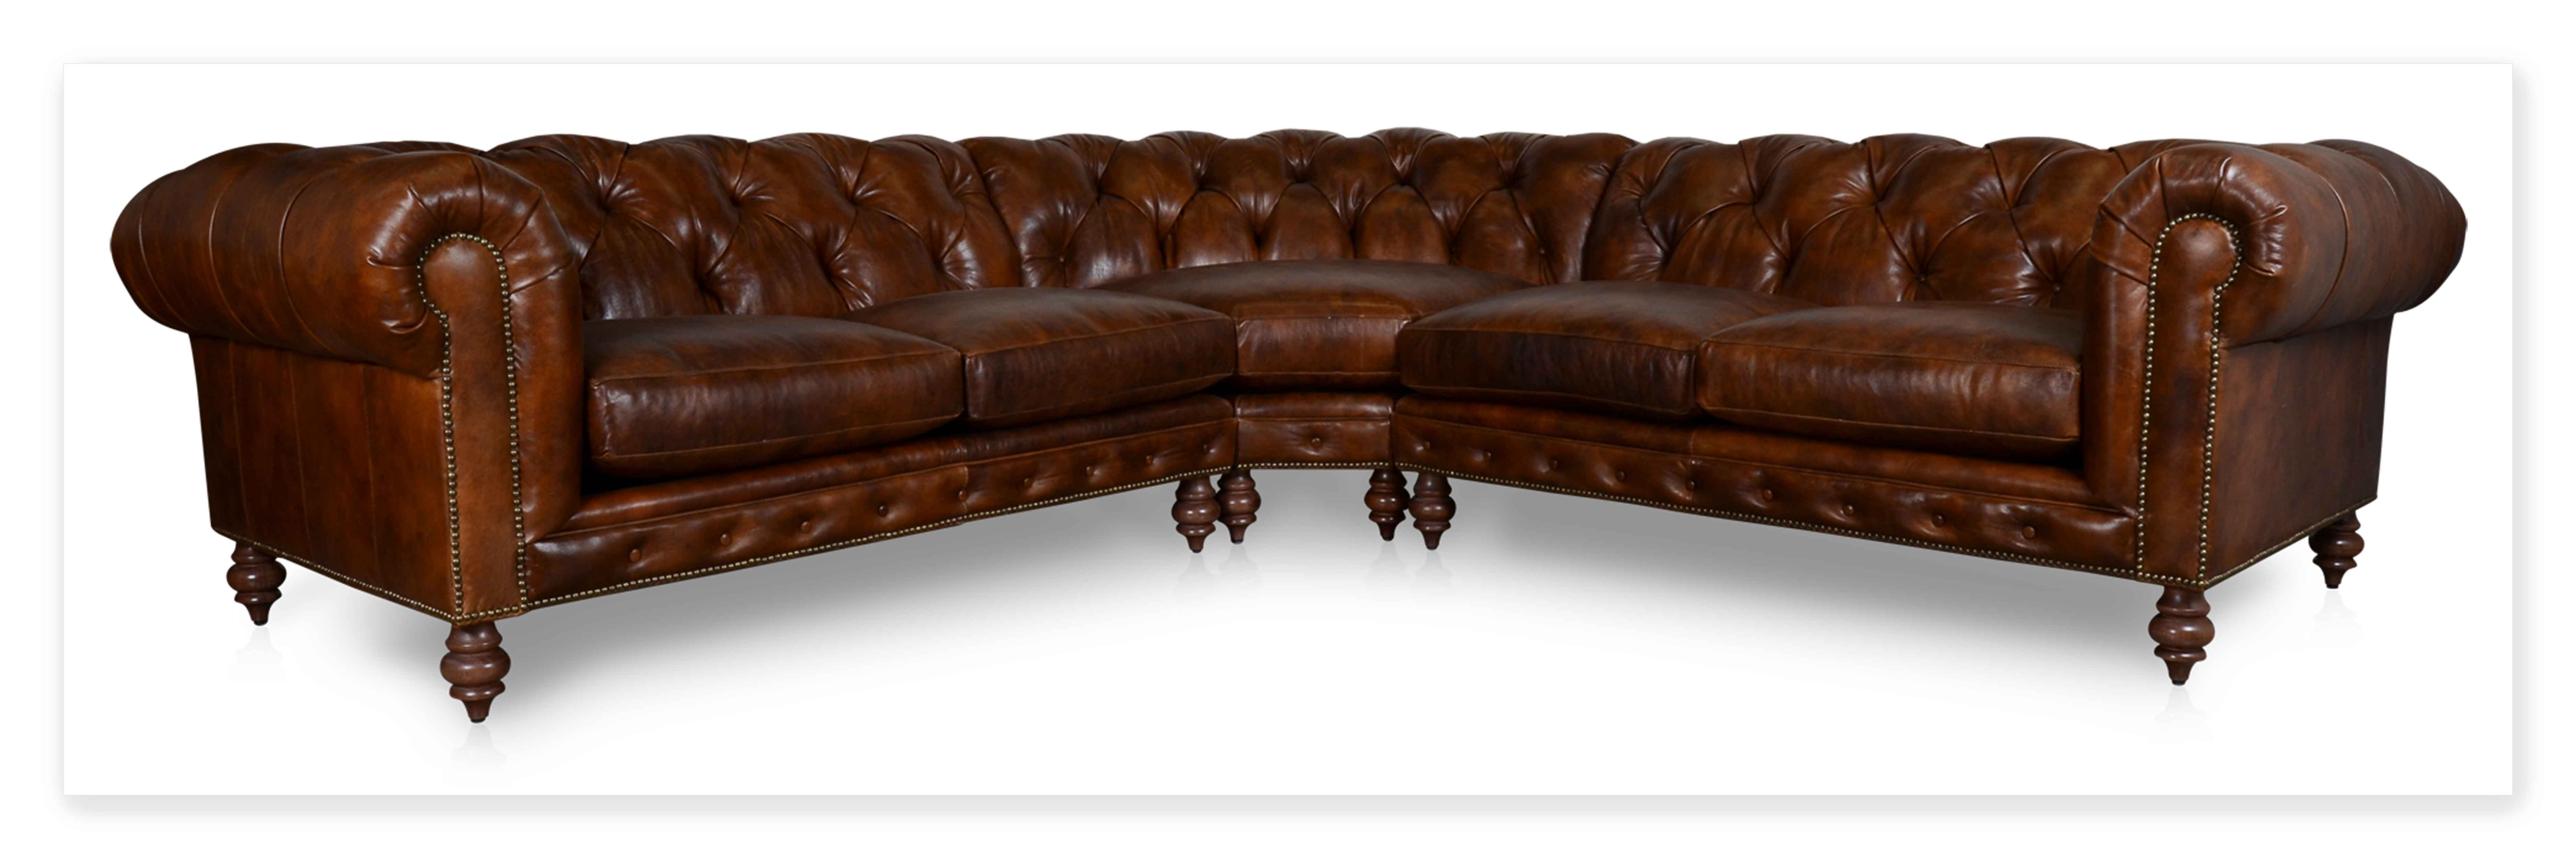 Lovely Chesterfield Leather Sofa 96 For Sofa Design Ideas with Chesterfield Leather Sofa